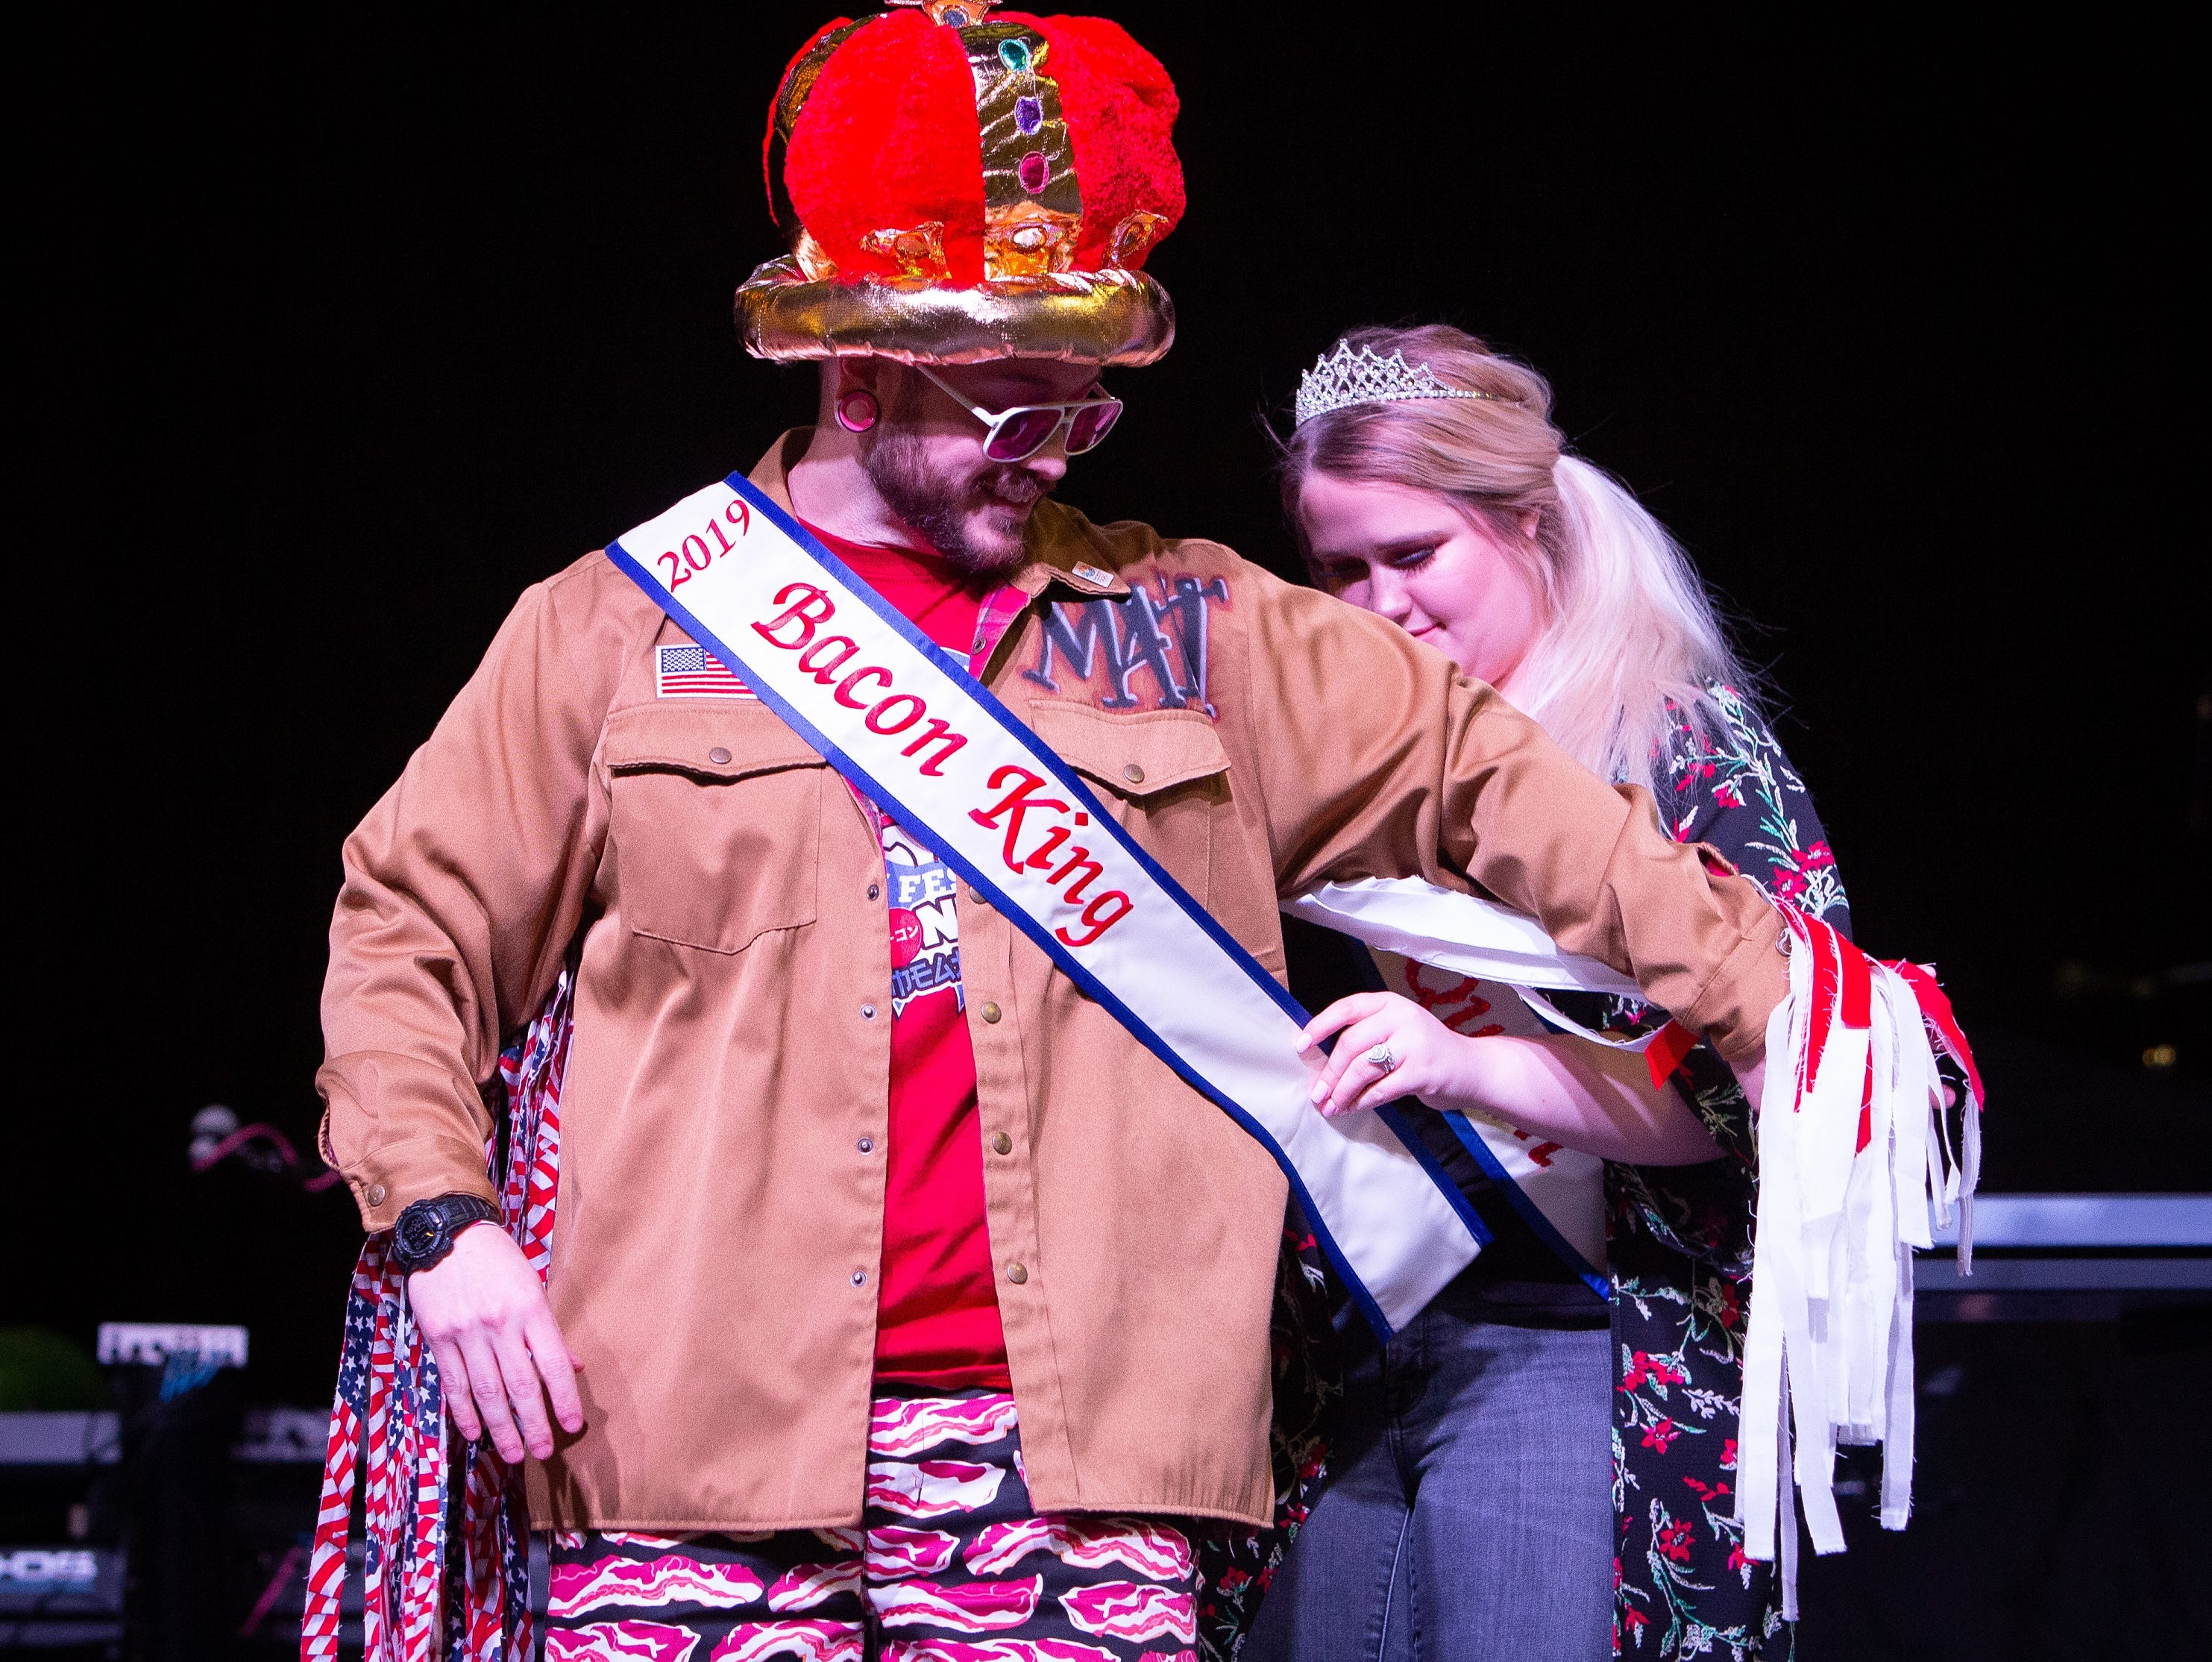 Matt Weis, of Ankeny, gets crowned as the Bacon King during the Bacon Fest at Hy-Vee Hall on Feb. 16, 2019 in Des Moines, Iowa.